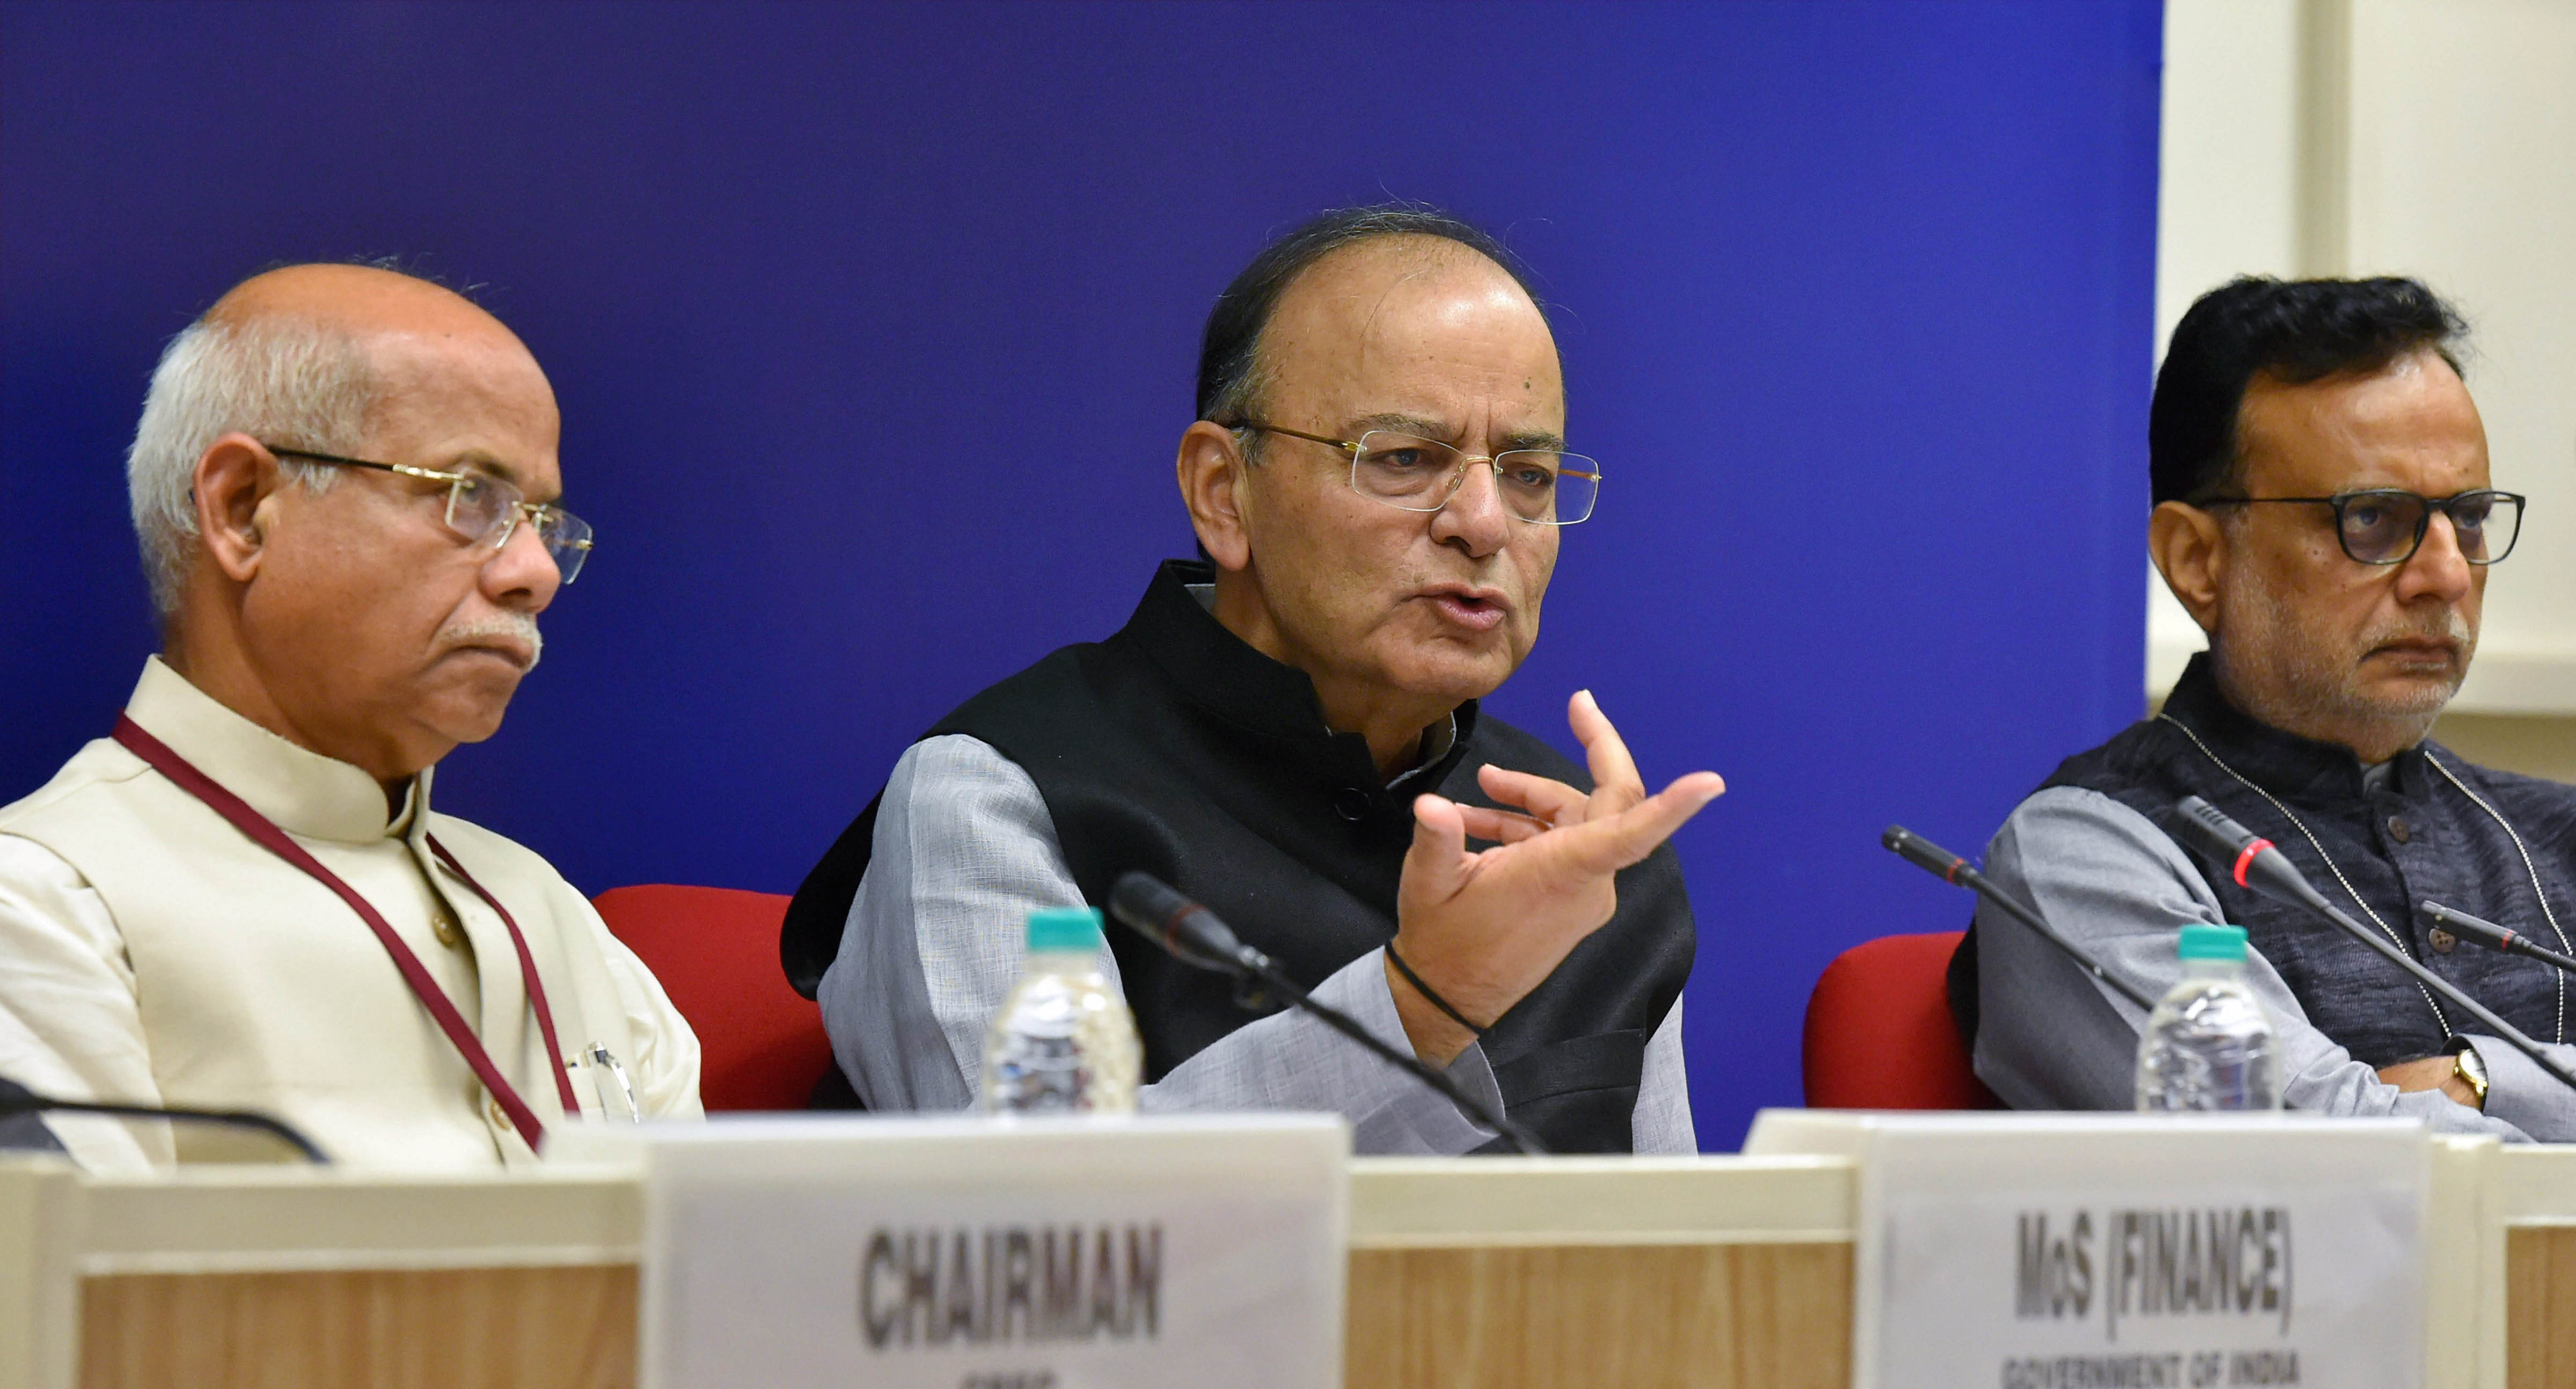 Union finance minister Arun Jaitley with MoS for finance Shiv Pratap Shukla and revenue secretary Hasmukh Adhia addressing media after the 22nd meeting of the Goods and Services Tax (GST) Council, in New Delhi on Friday. Credit: PTI/Atul Yadav